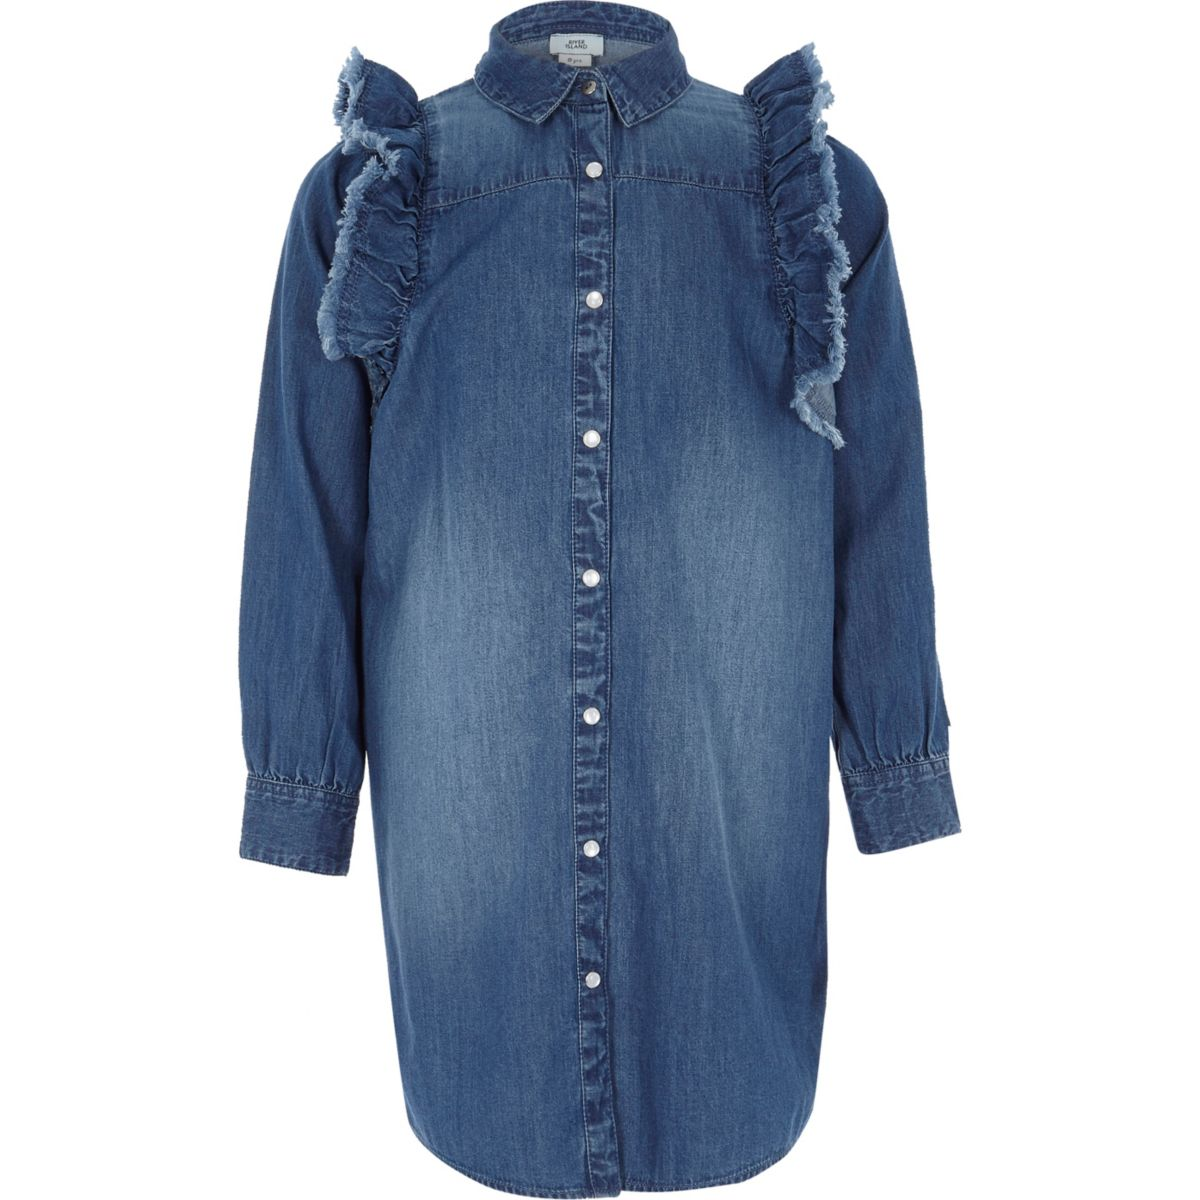 Girls blue denim frill shirt dress